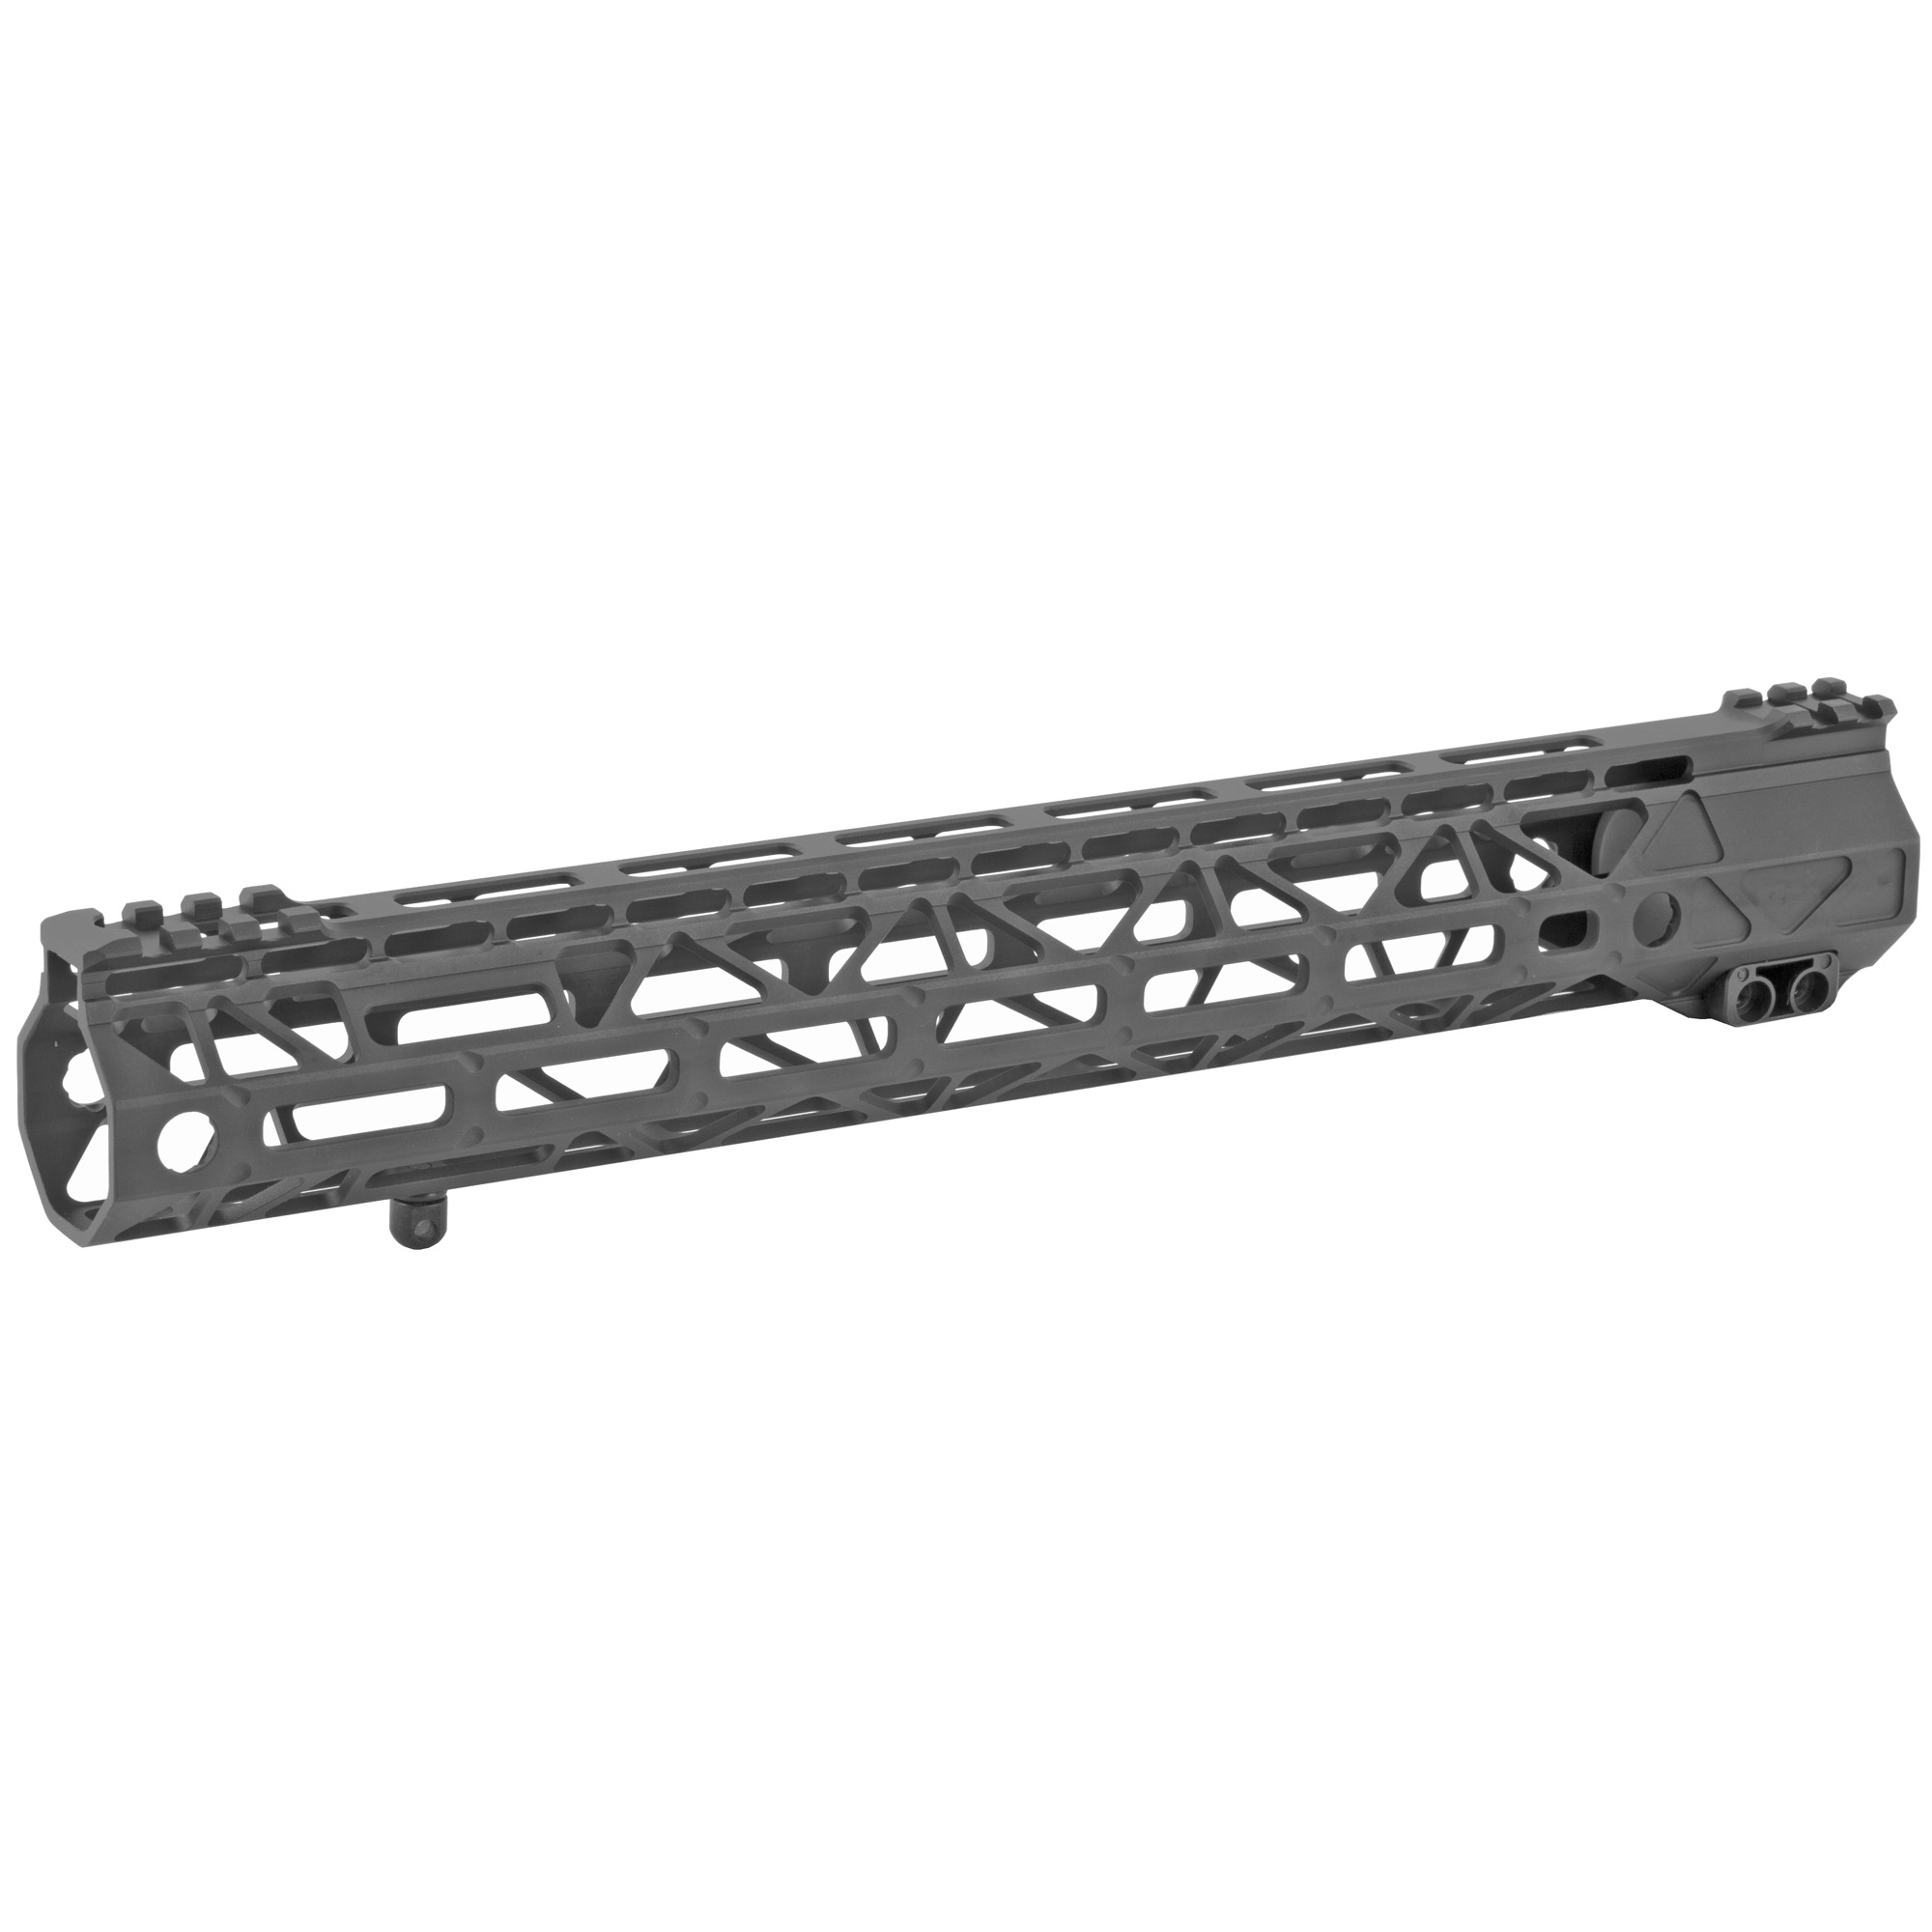 "The Battle Arms Development's Rigidrail 13.7"" M-Lok Handguard is designed to balance between light weight and strength/rigidity. The overall length is 13.7"" and the inner diameter is 1.315"". M-LOK Slots at 3"" 6"" 9"" and partial 12 o'clock positions"" and additional single M-Lock slots at four"" 45 degree positions"" for forward mounting light"" laser"" etc. It is compatible with AR-15 upper receivers and most low profile gas blocks."